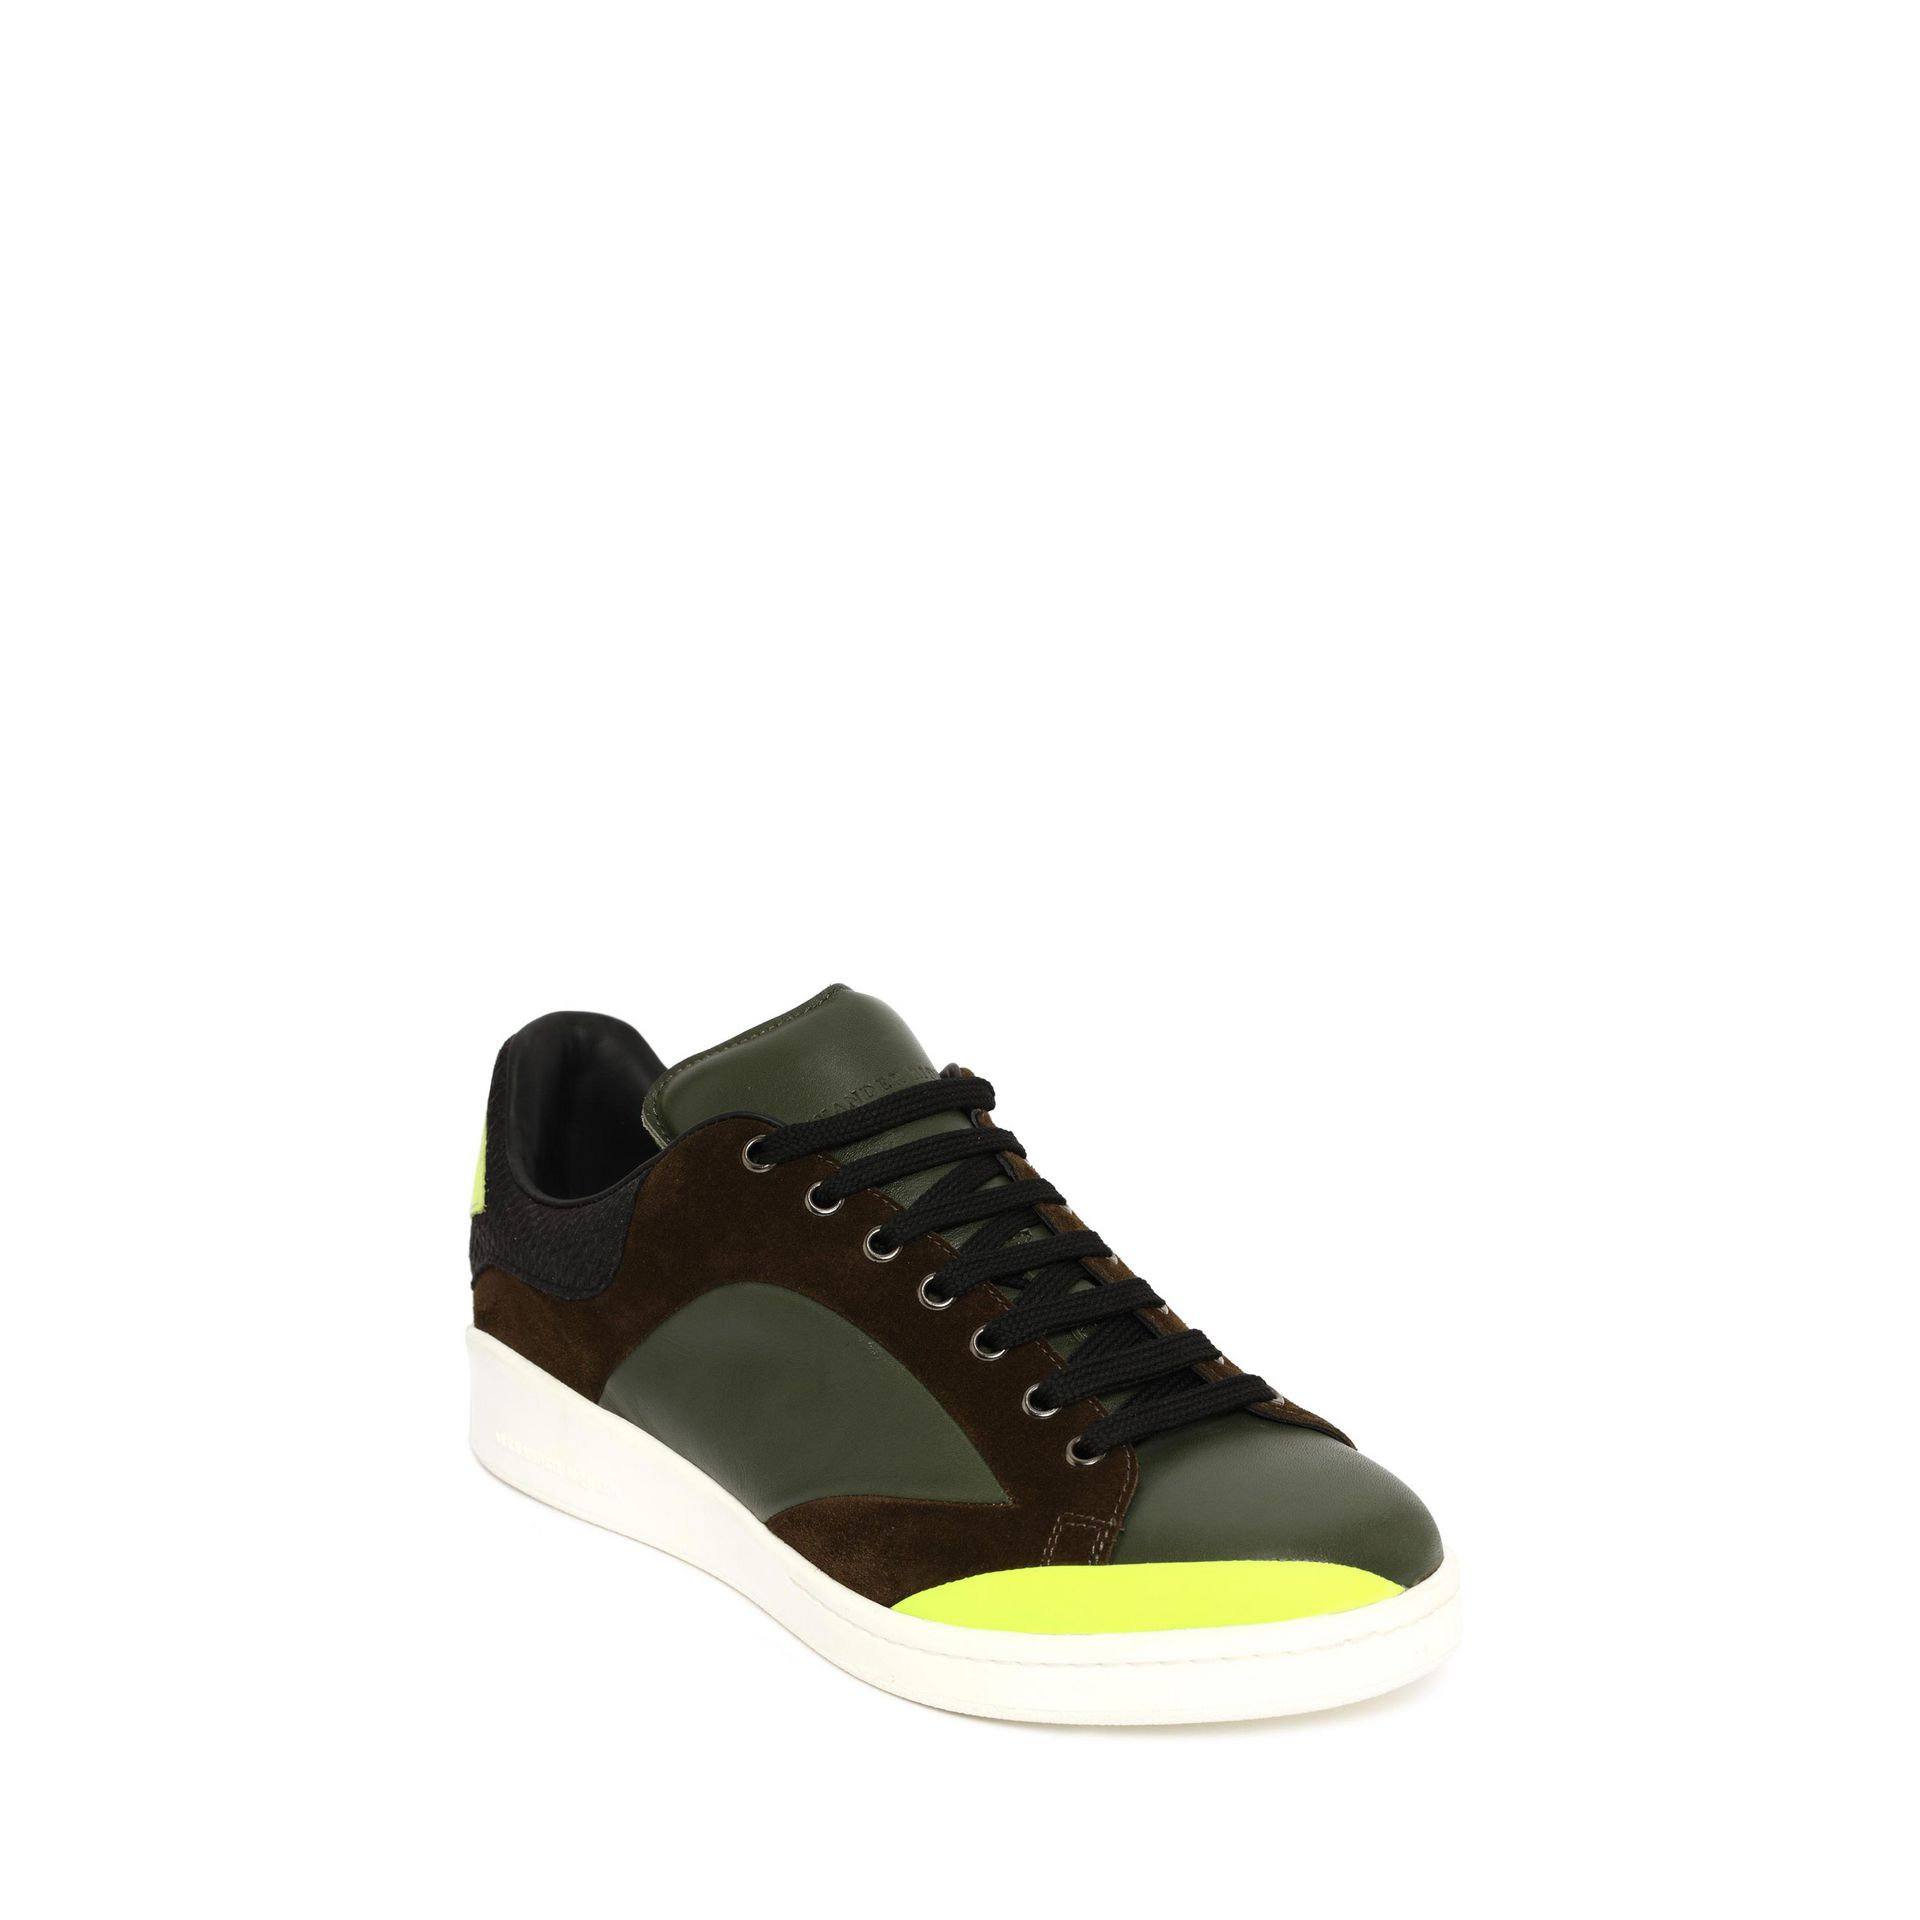 lyst alexander mcqueen low lace up abstract sneaker in. Black Bedroom Furniture Sets. Home Design Ideas